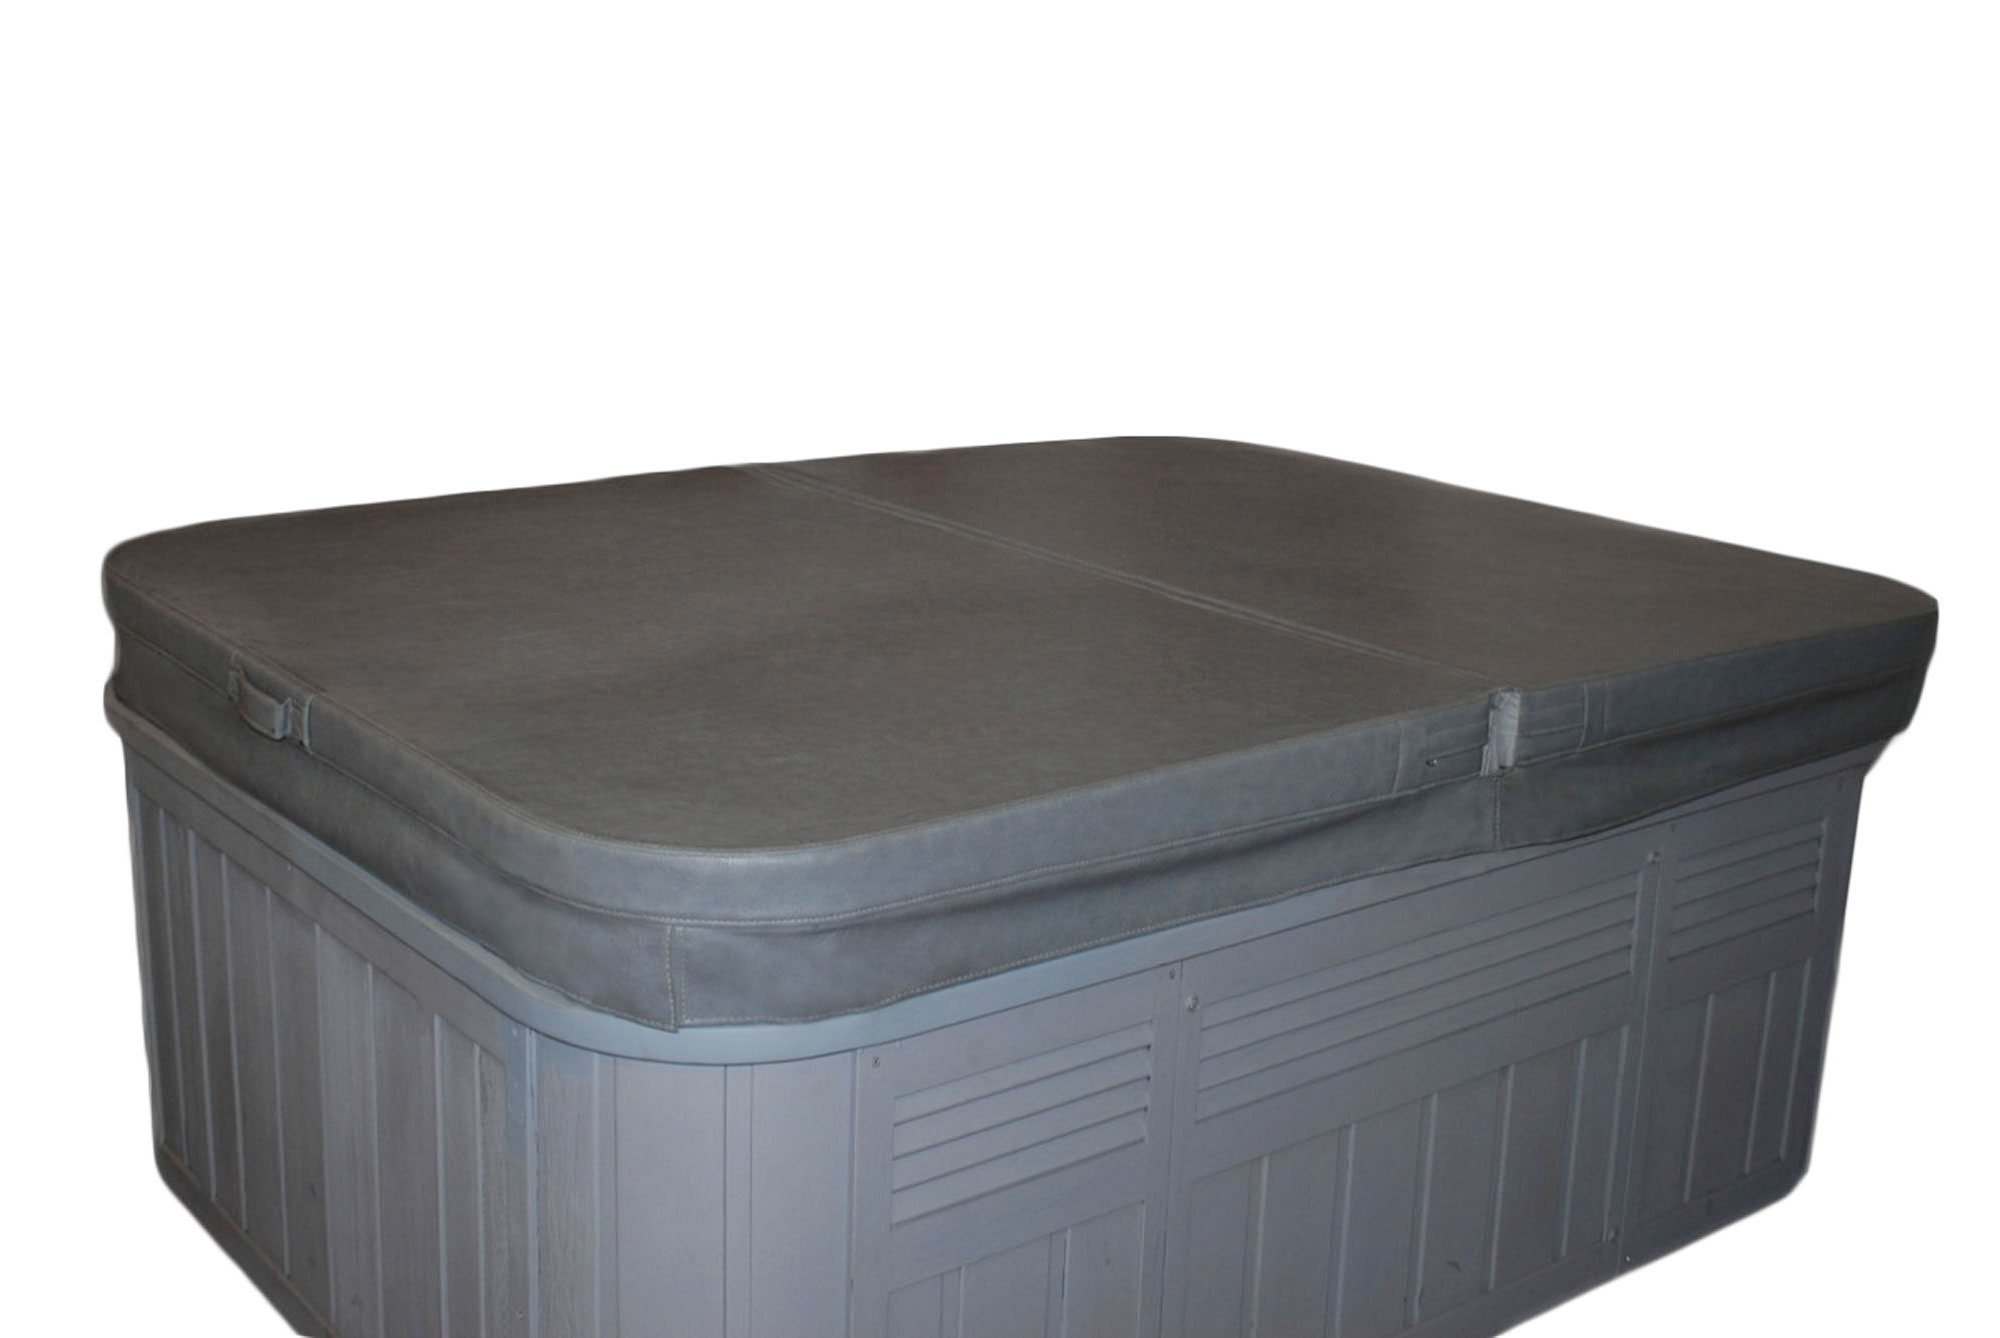 84 x 84 Inch Replacement Spa Cover and Hot Tub Cover - Charcoal